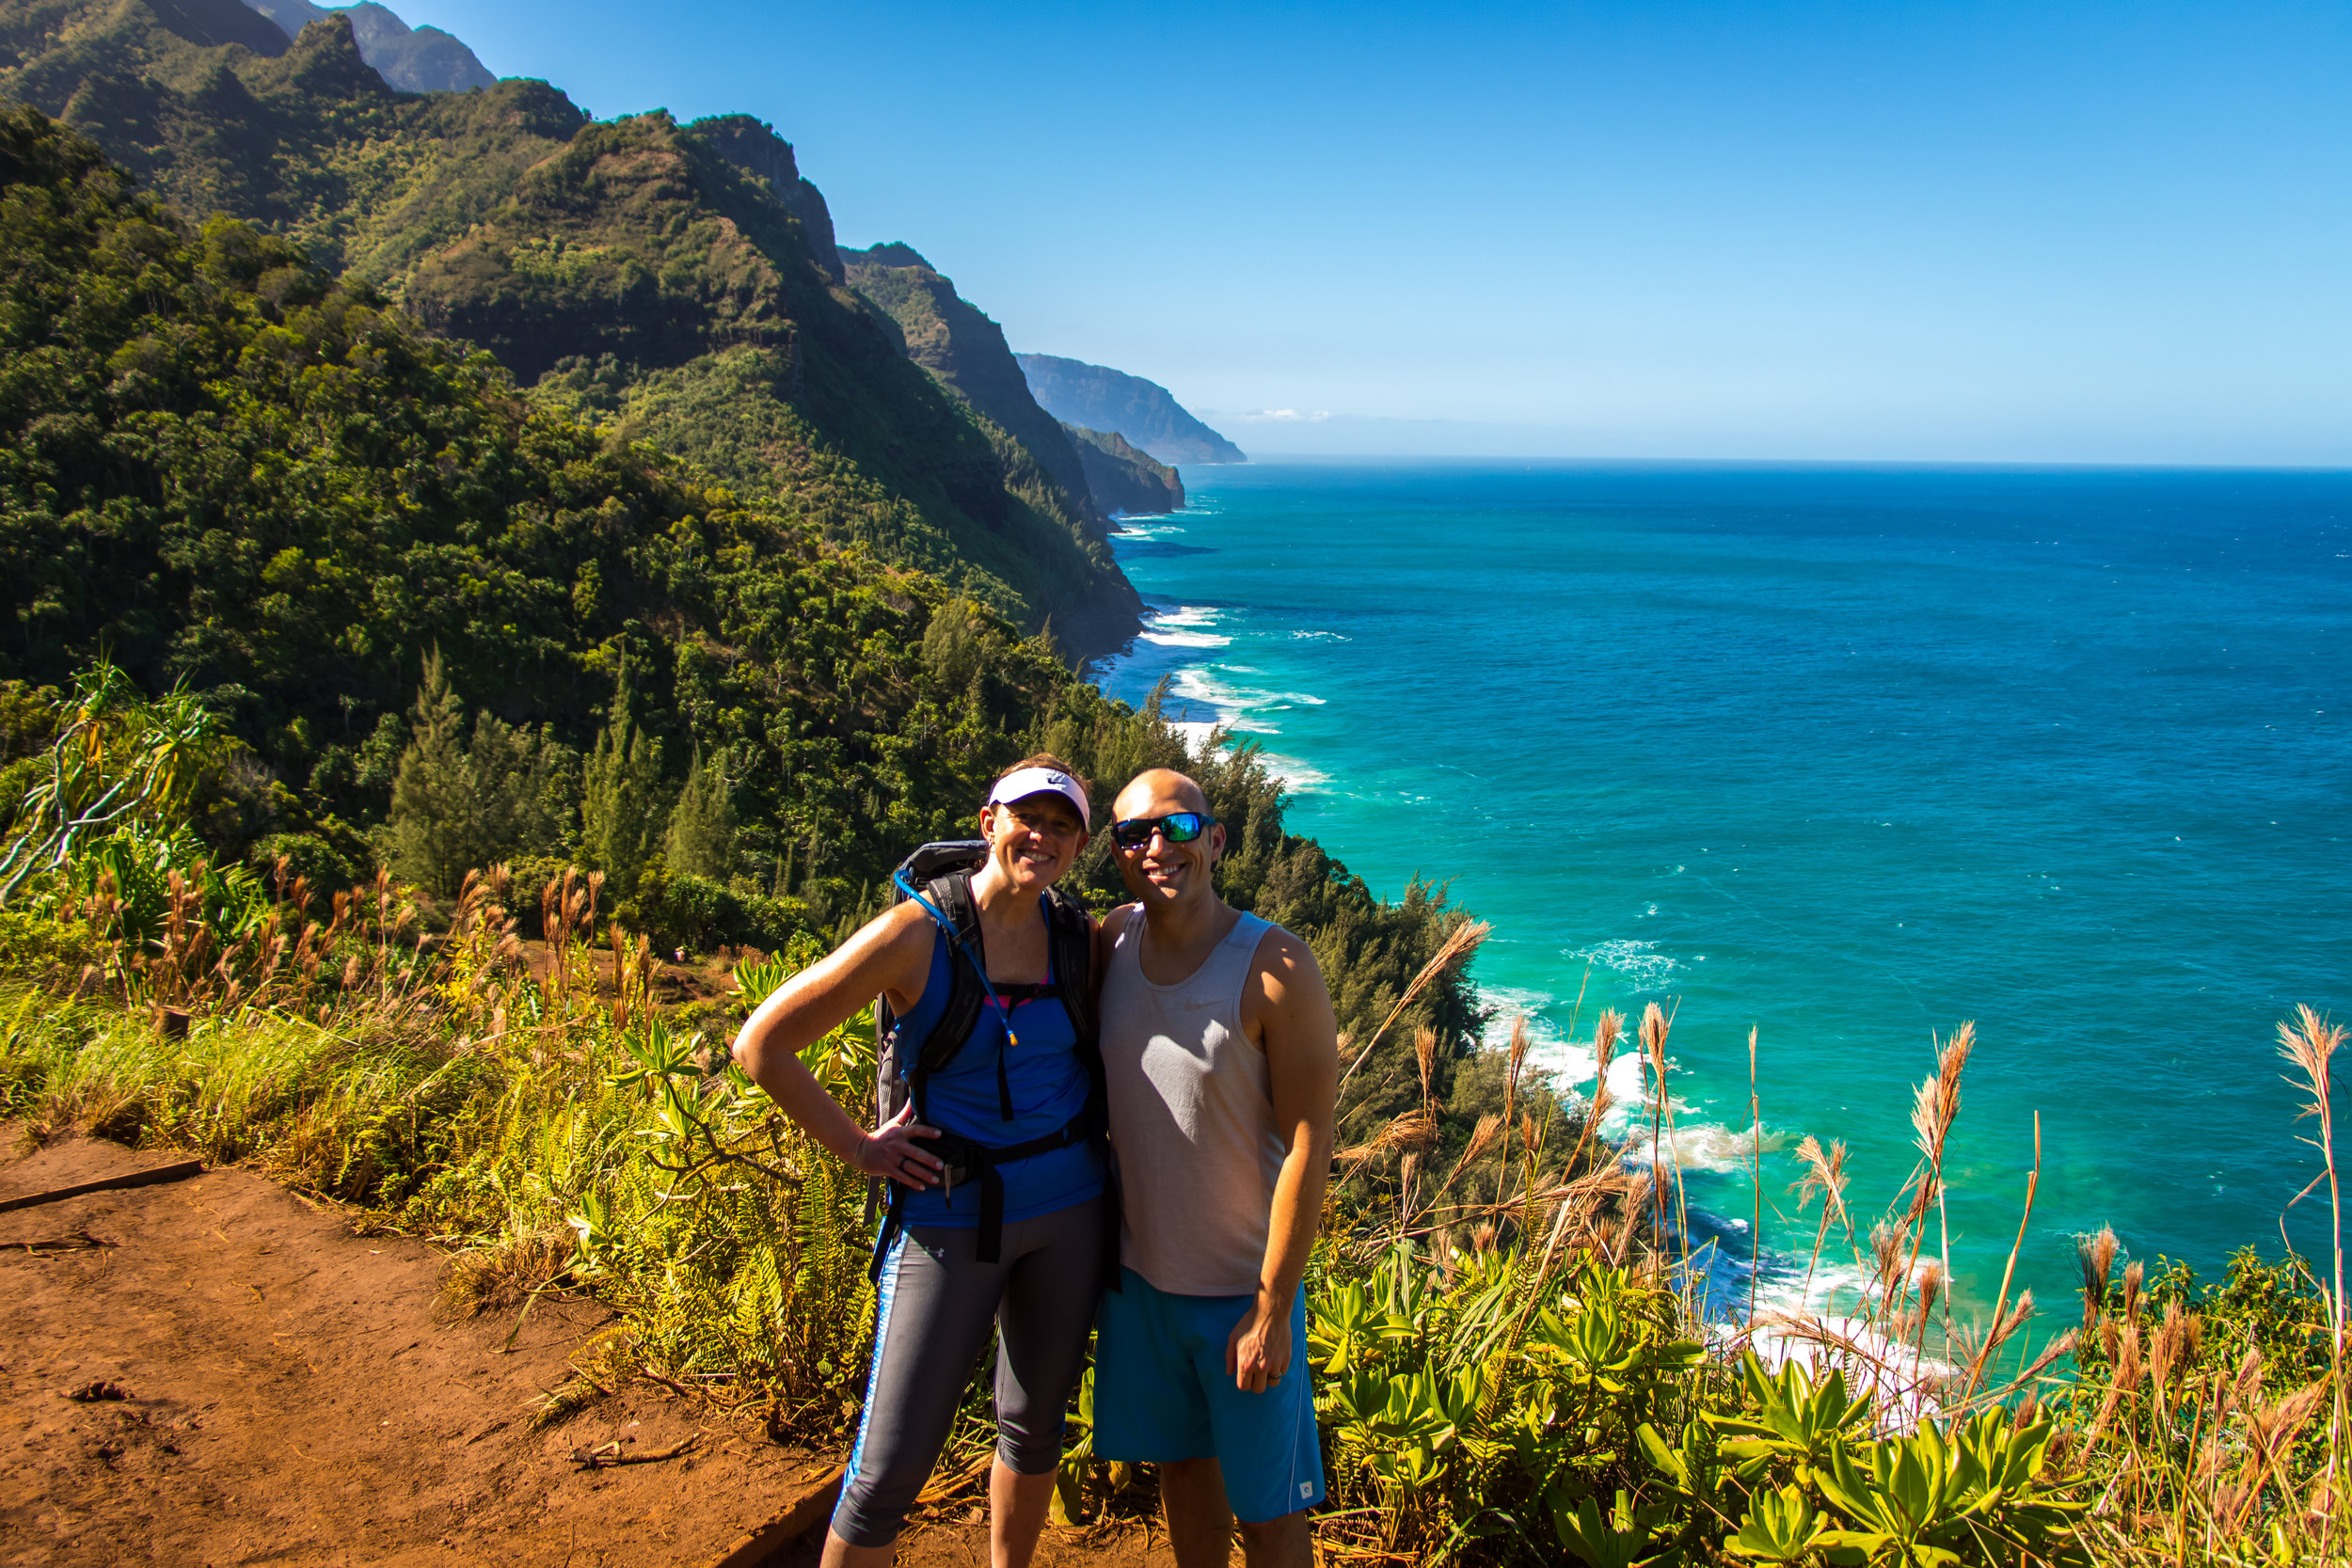 Erin along with her husband in beautiful Hawai'i.